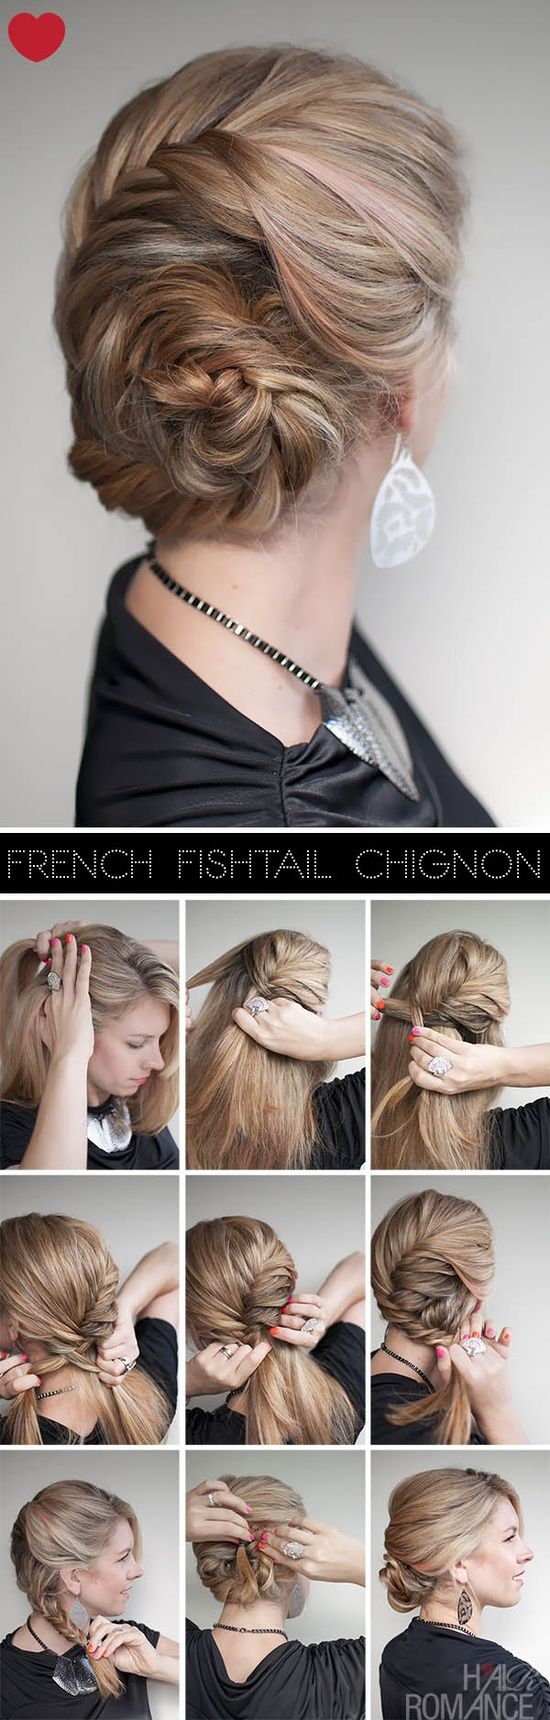 Awesome Hair Romance U2013 French Fishtail Braided Chignon Hairstyle Tutorial @ Fashion  And Style